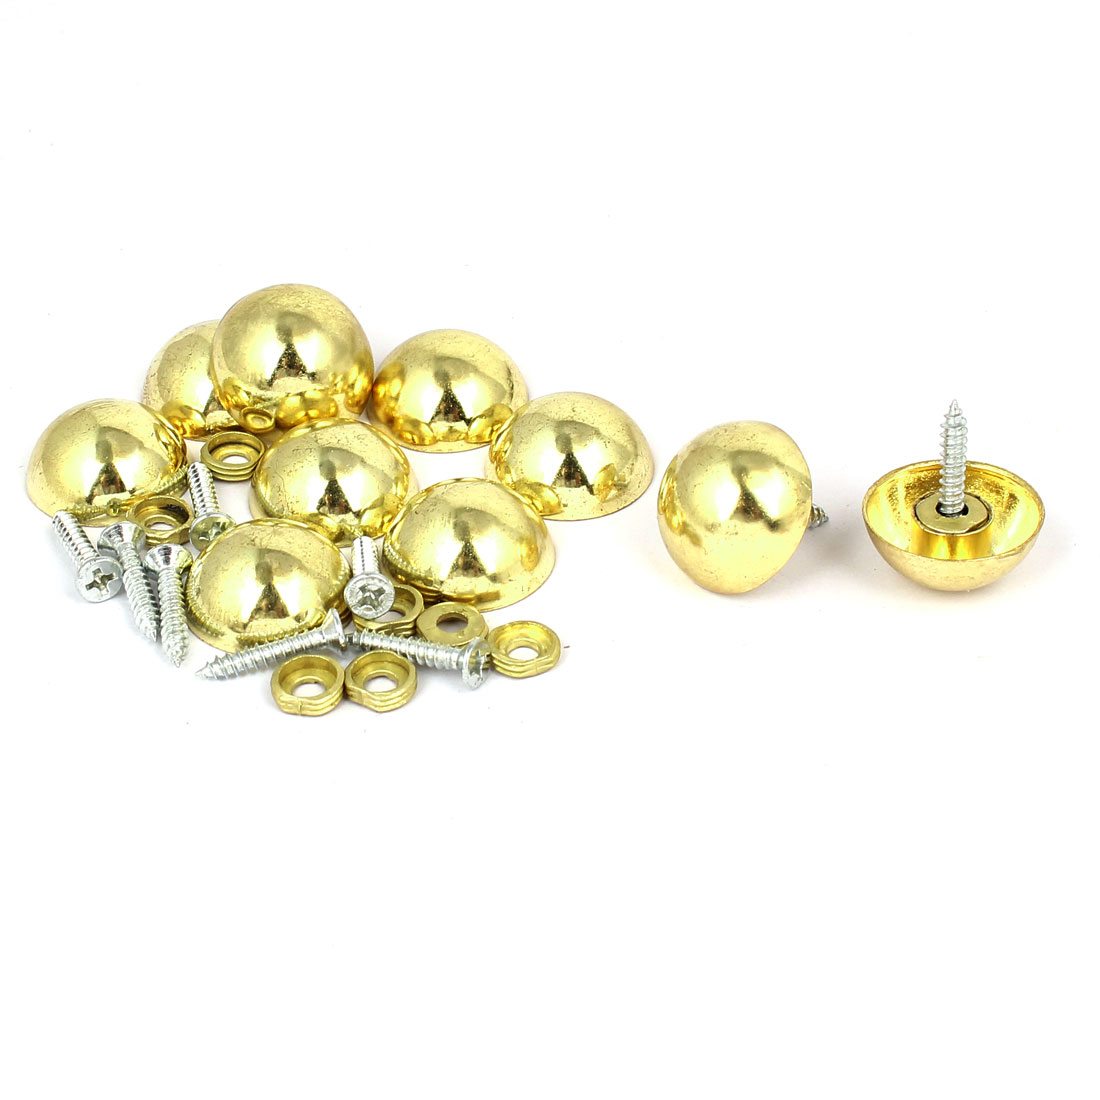 23mm Dia Head Metal Semicircle Screw Type Glass Mirror Nail Gold Tone 10pcs